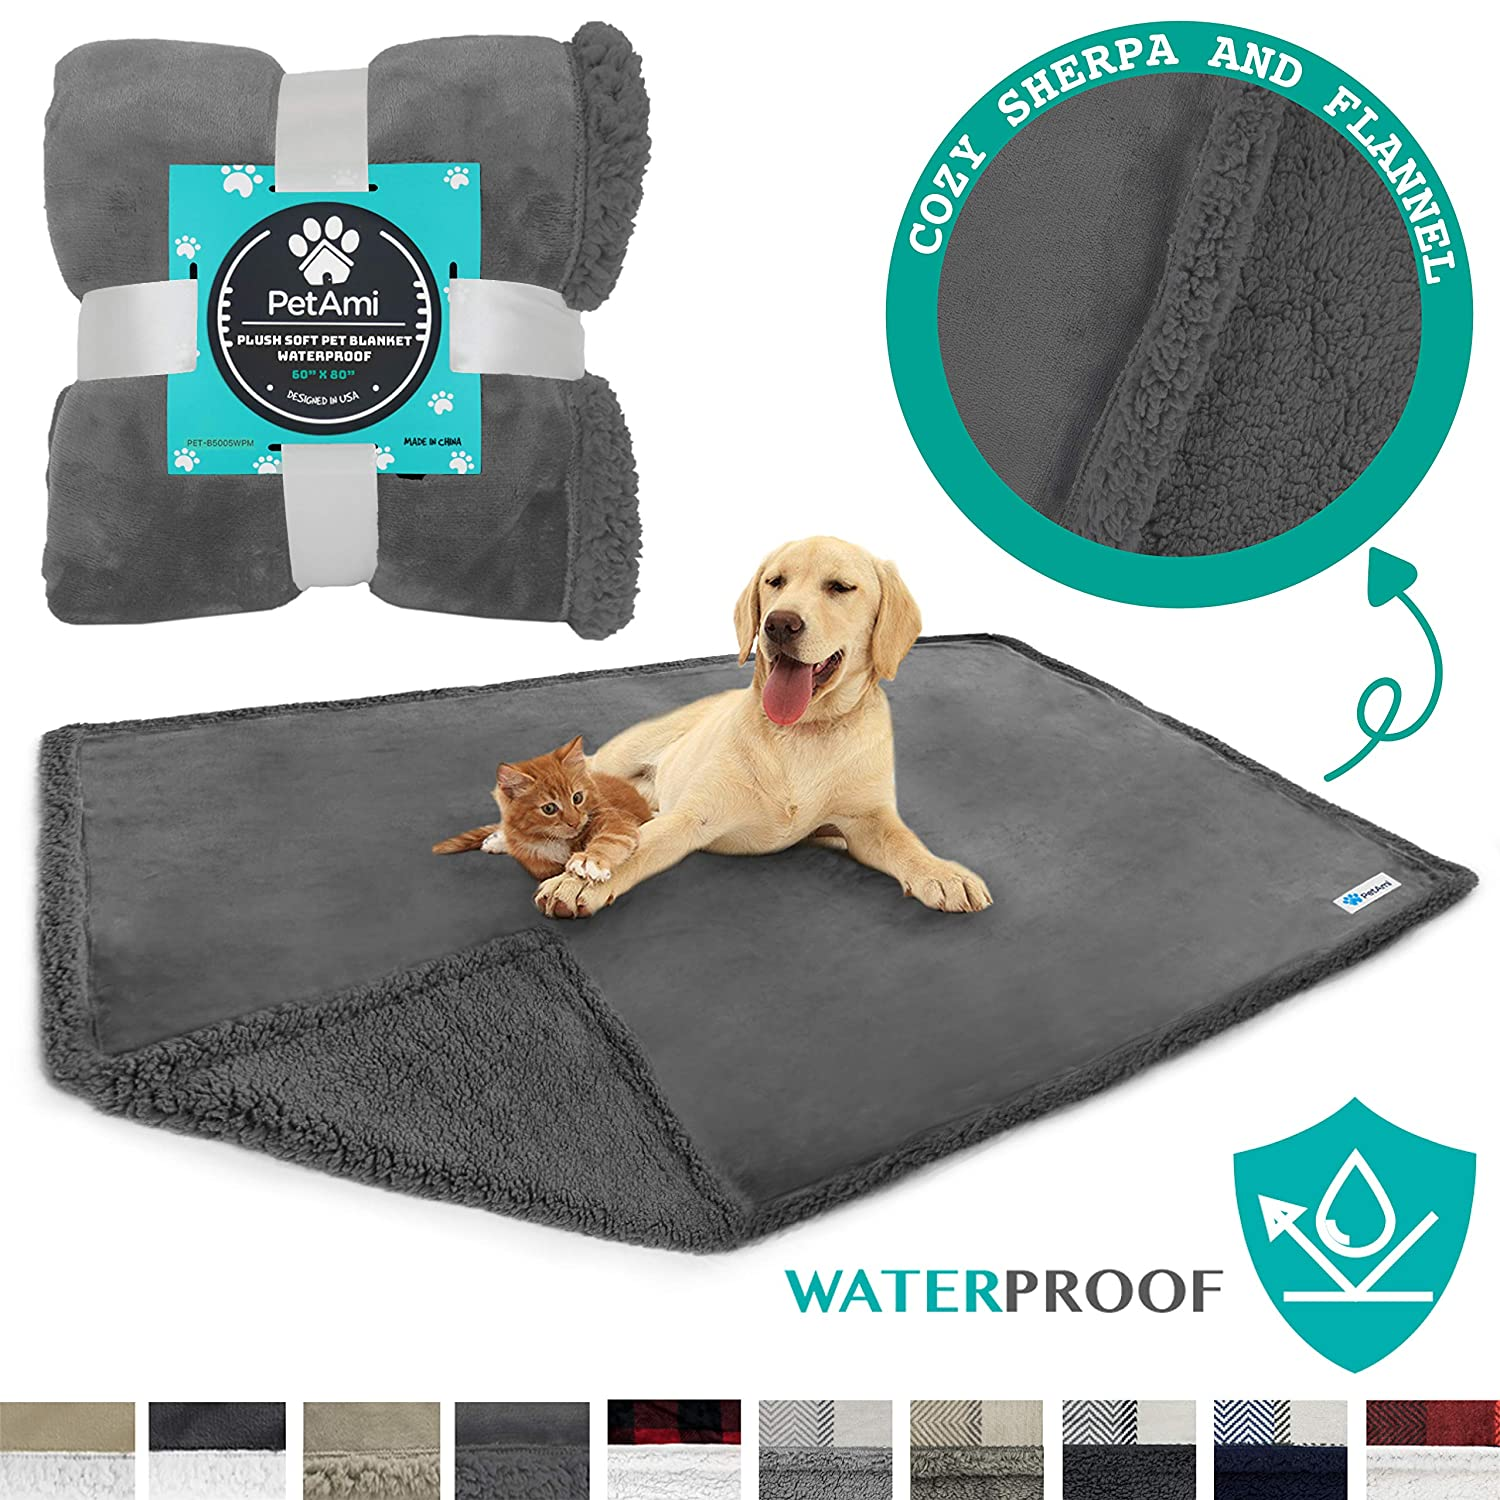 PetAmi best Waterproof Dog Blanket for Bed